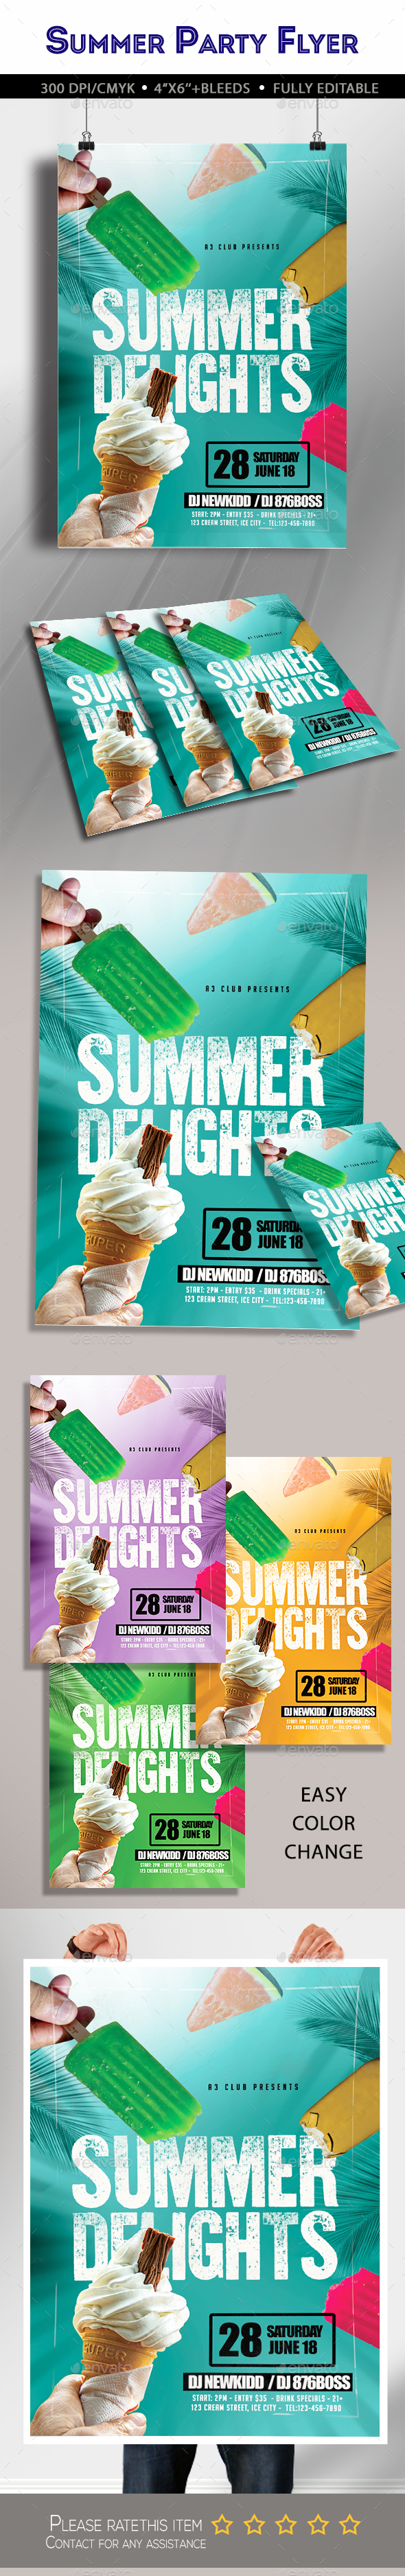 Summer Delights Flyer - Clubs & Parties Events